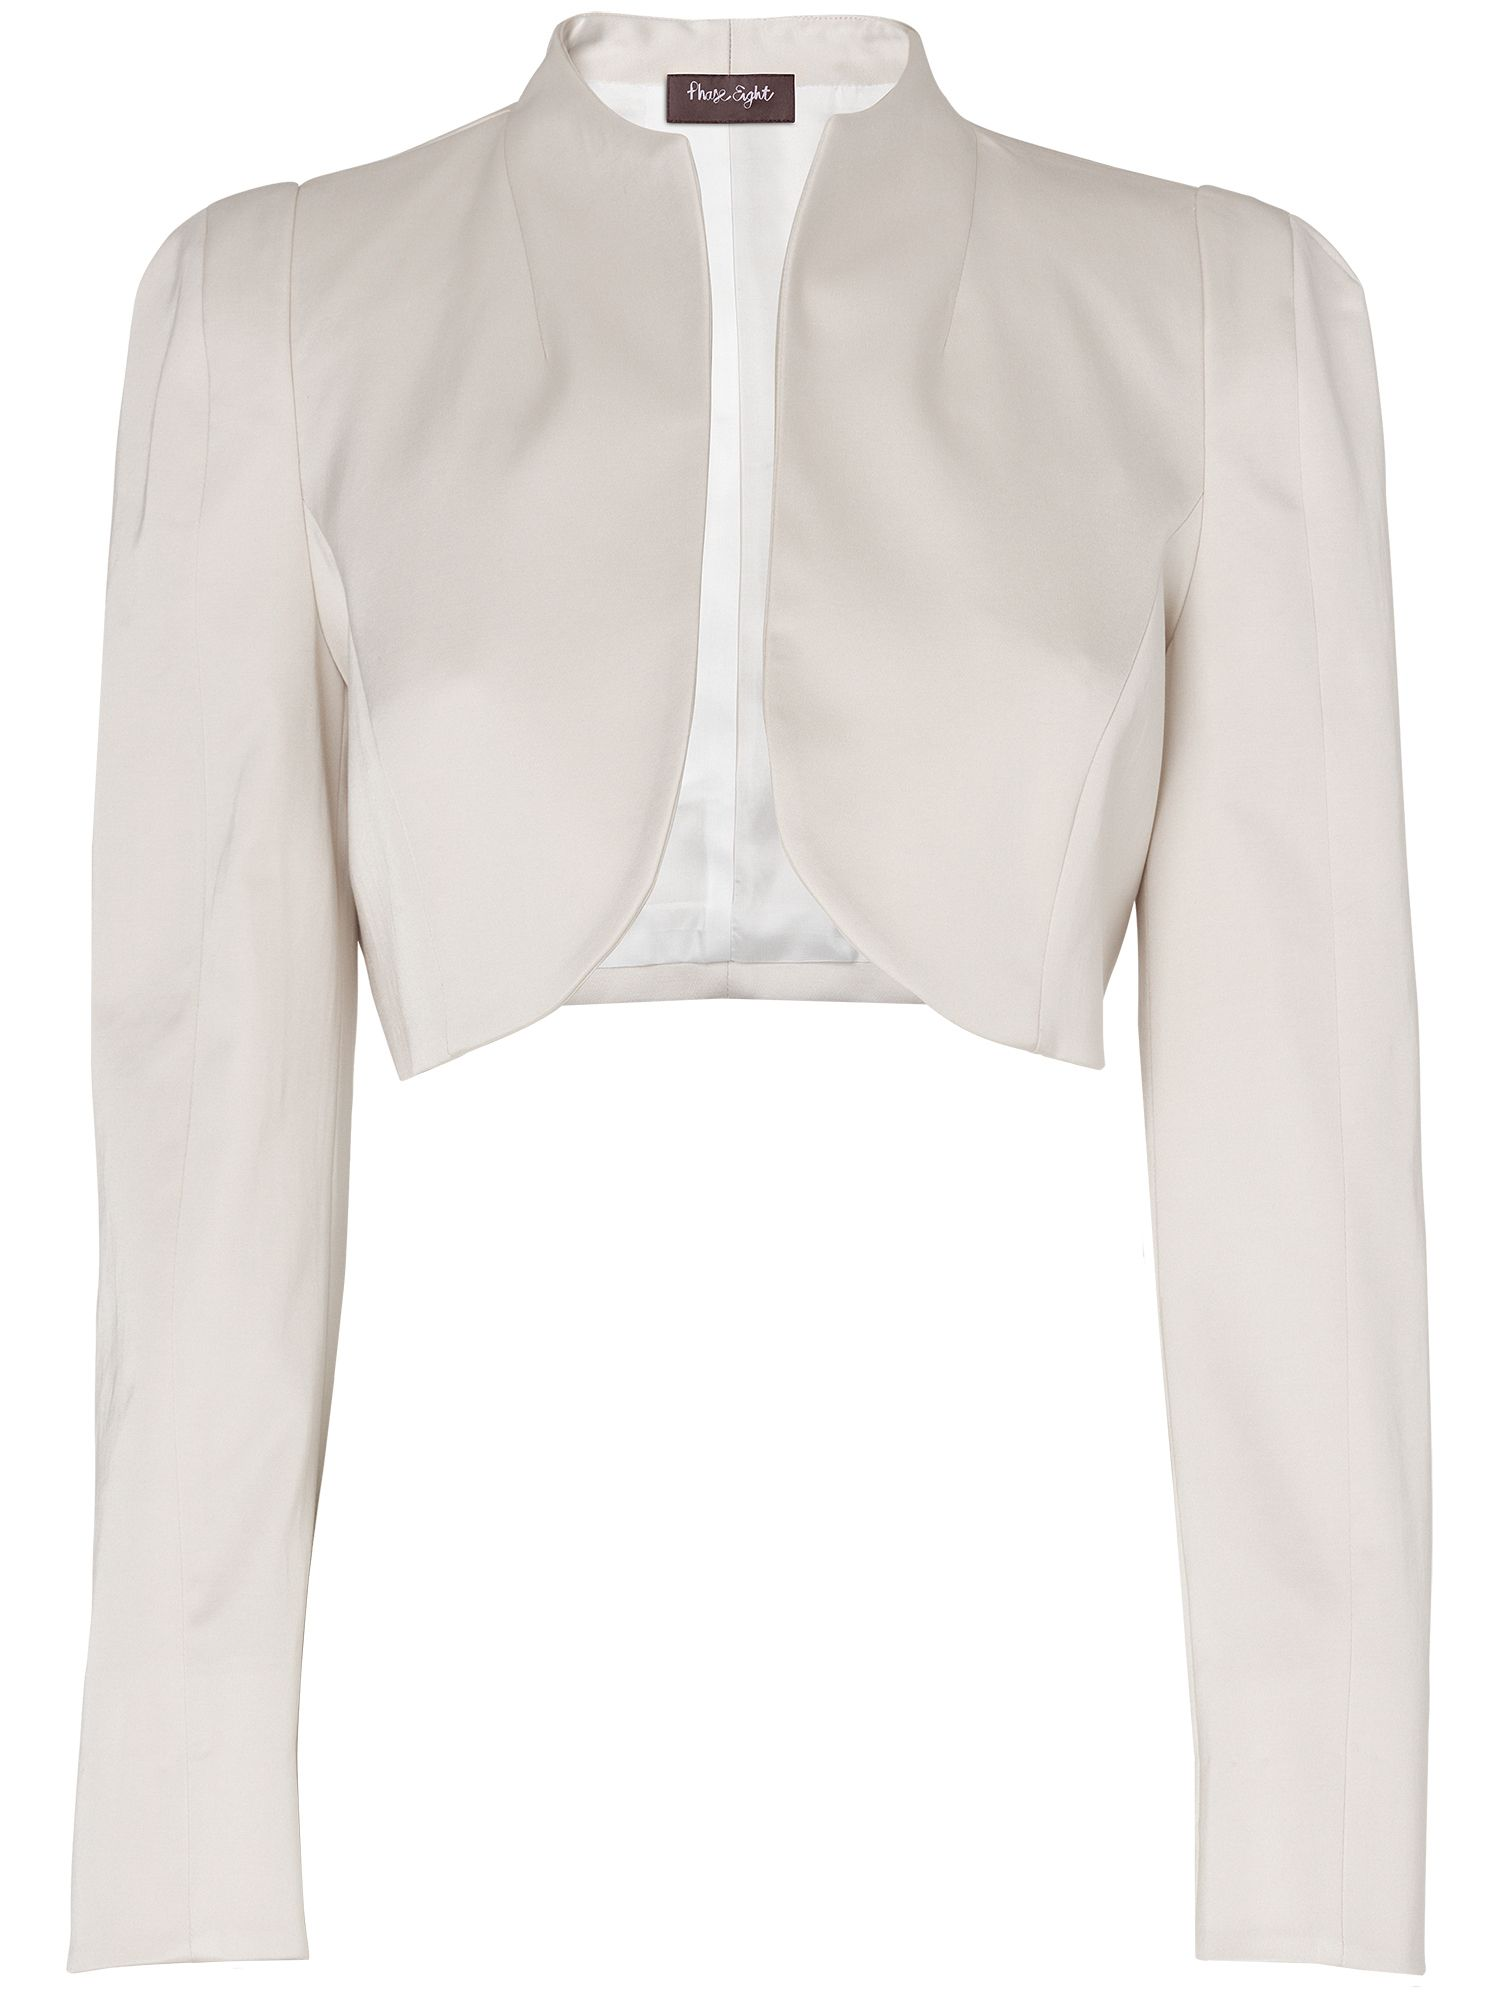 Nicole wedding jacket